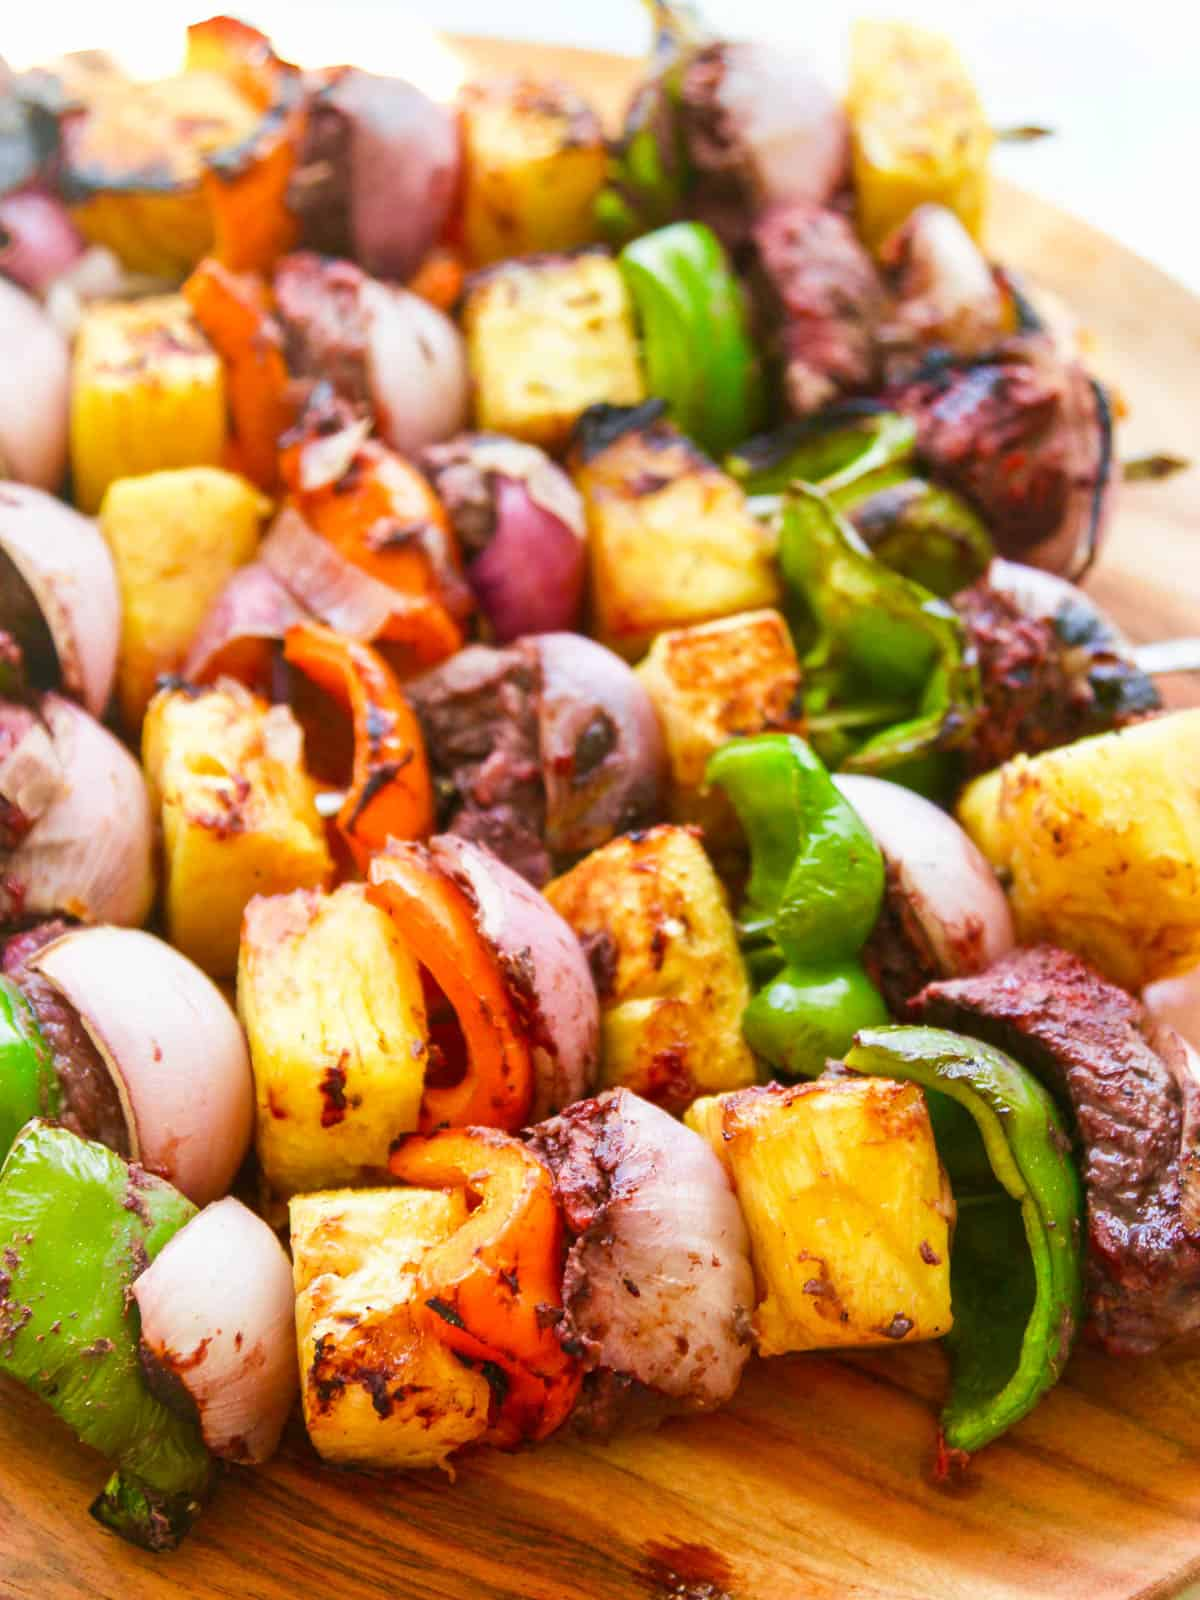 Grilled Shish Kebob skewers made with top sirloin beef, bell pepper, pineapple, and onion.